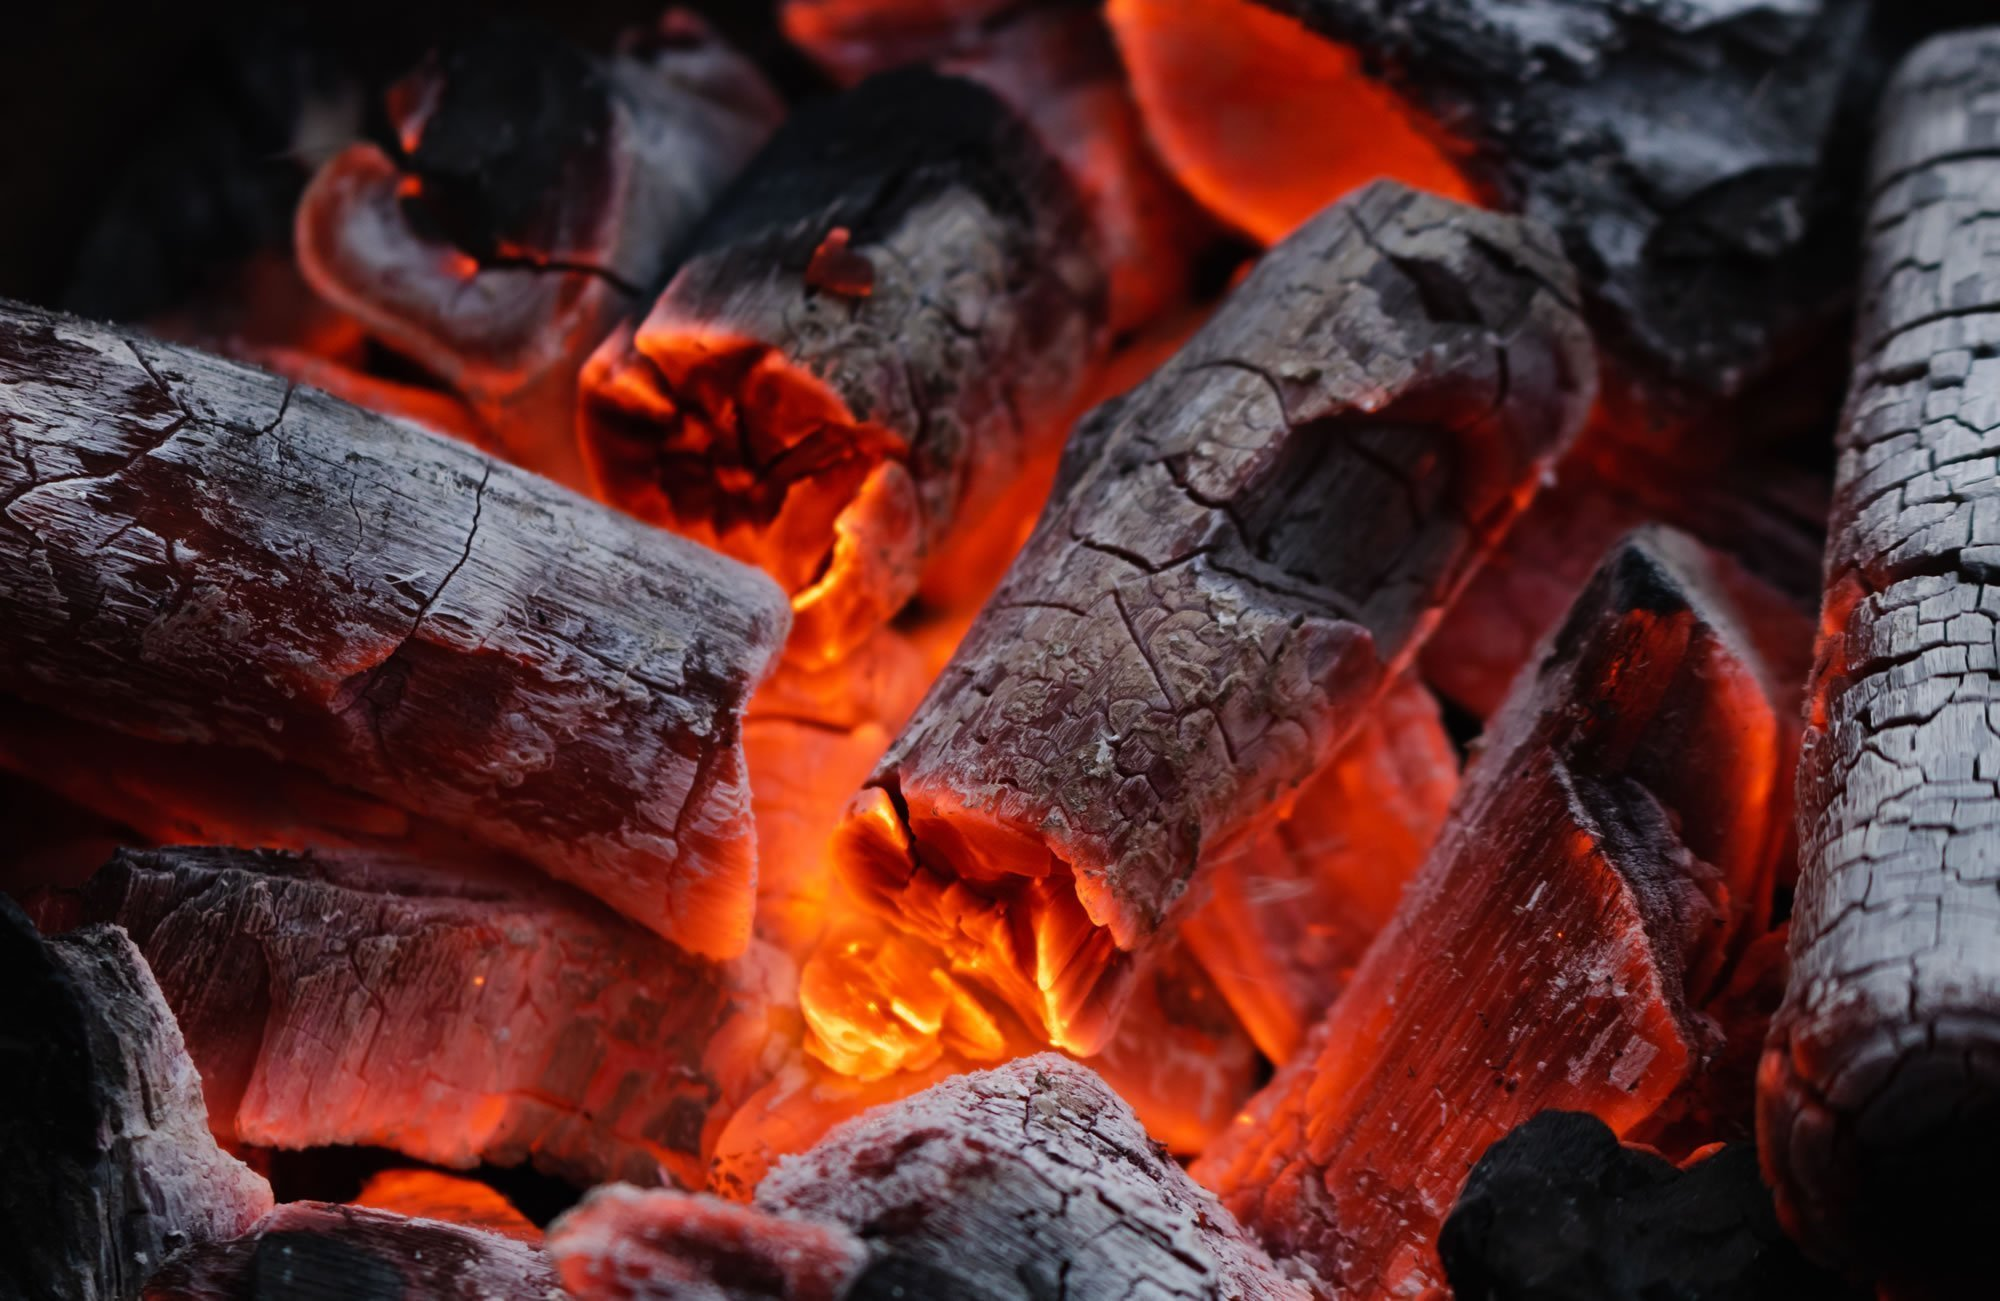 Best Way To Light & Start Charcoal For A Grill